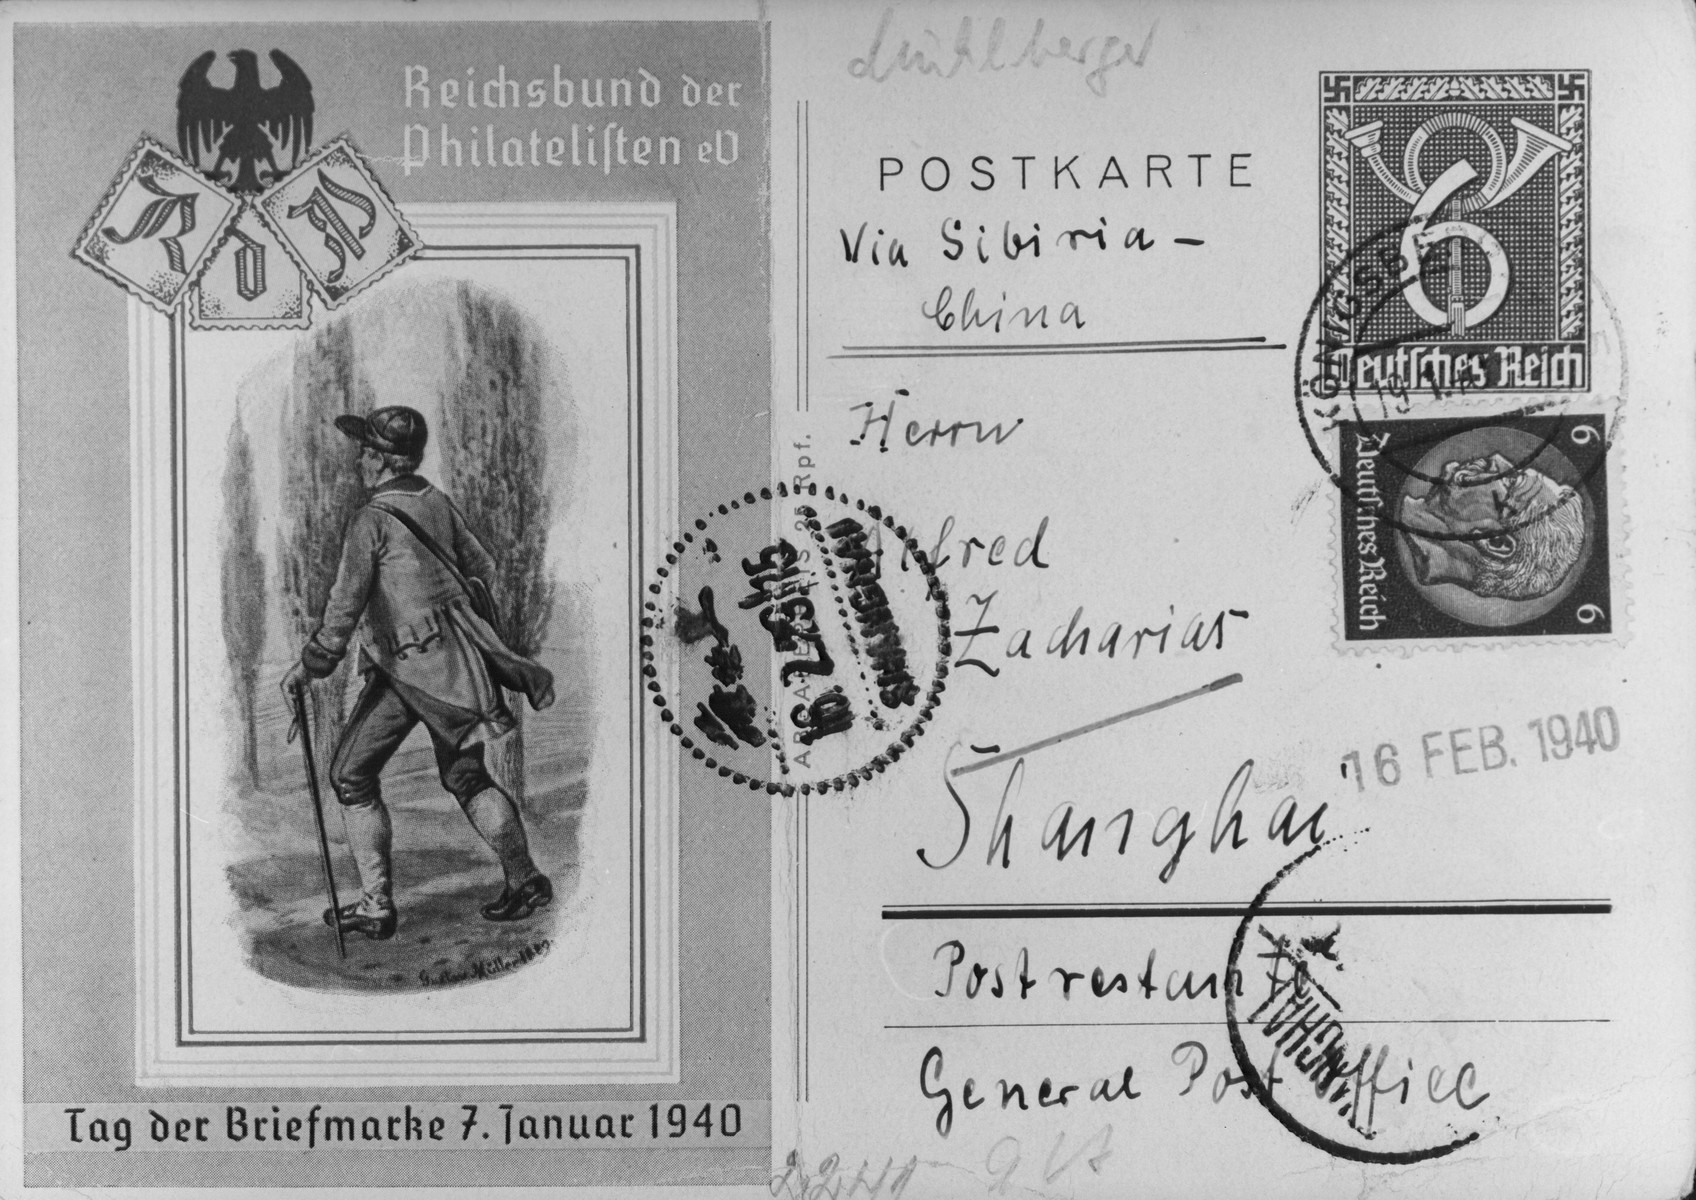 Postcard sent to Mr. Alfred Zacharias in Shanghai from Koenigsberg Germany by way of Siberia.